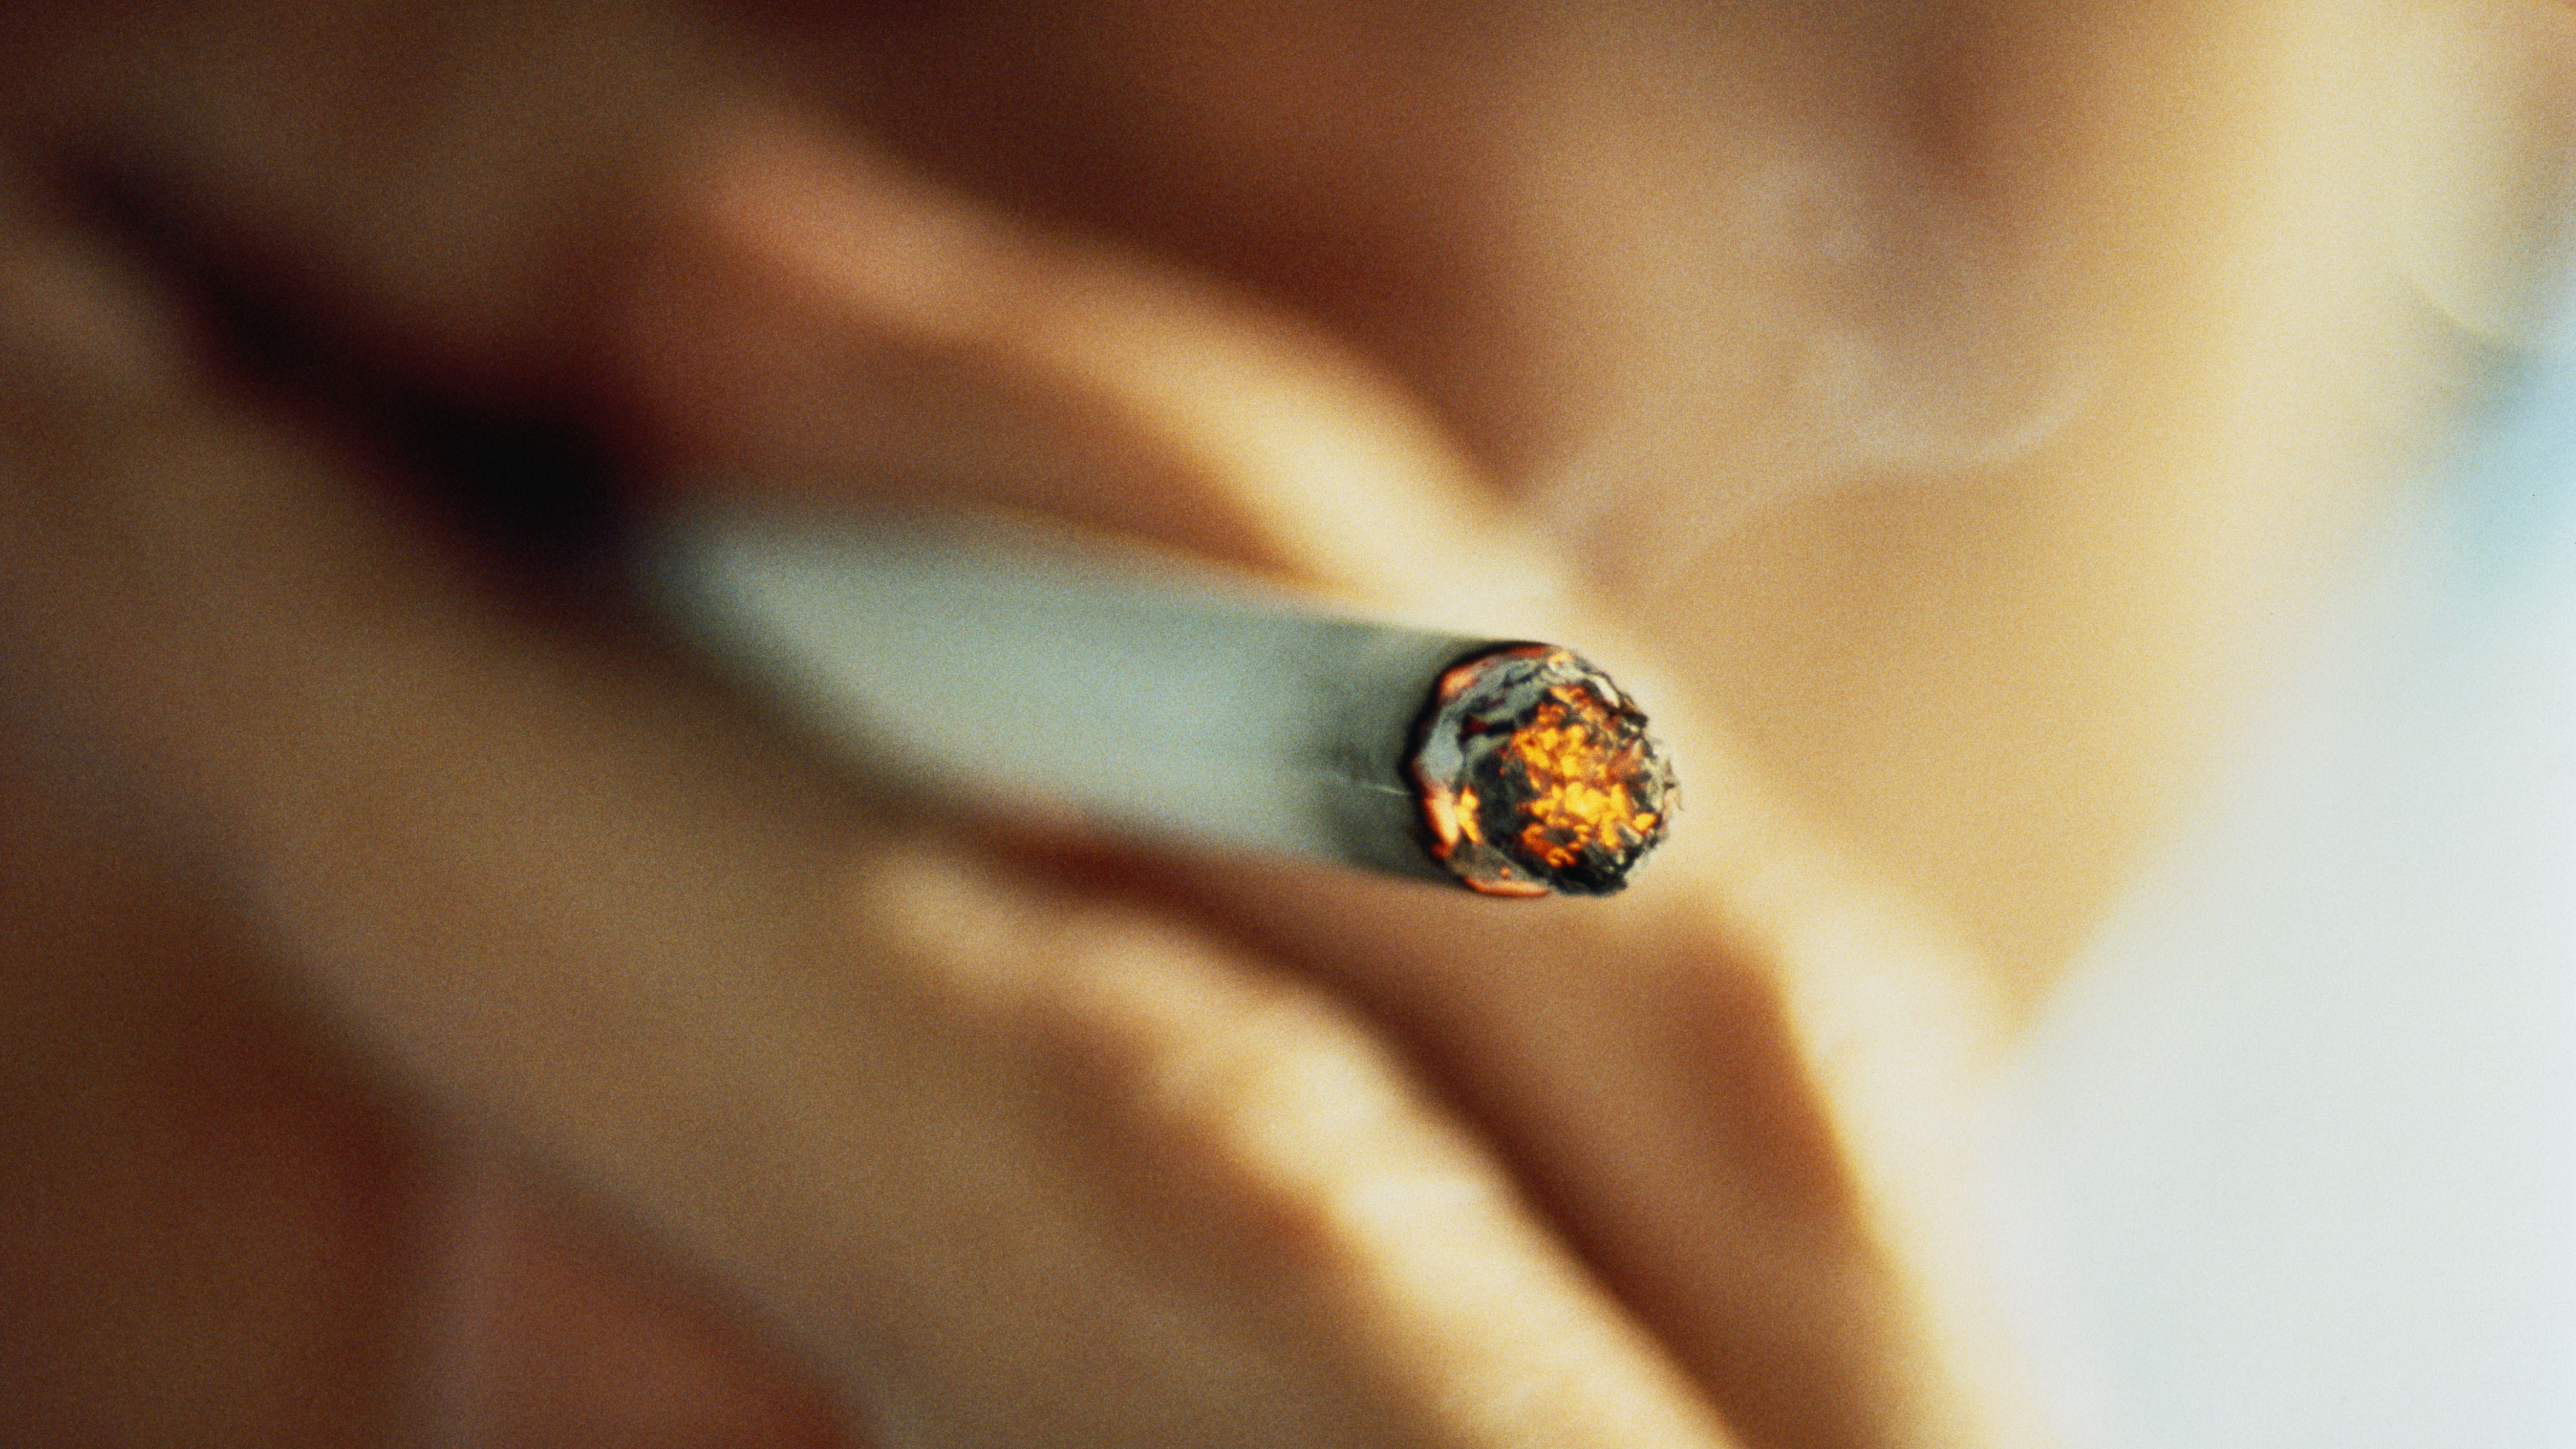 Third-Hand Smoke Exposure Routes, Risks, and Dangers